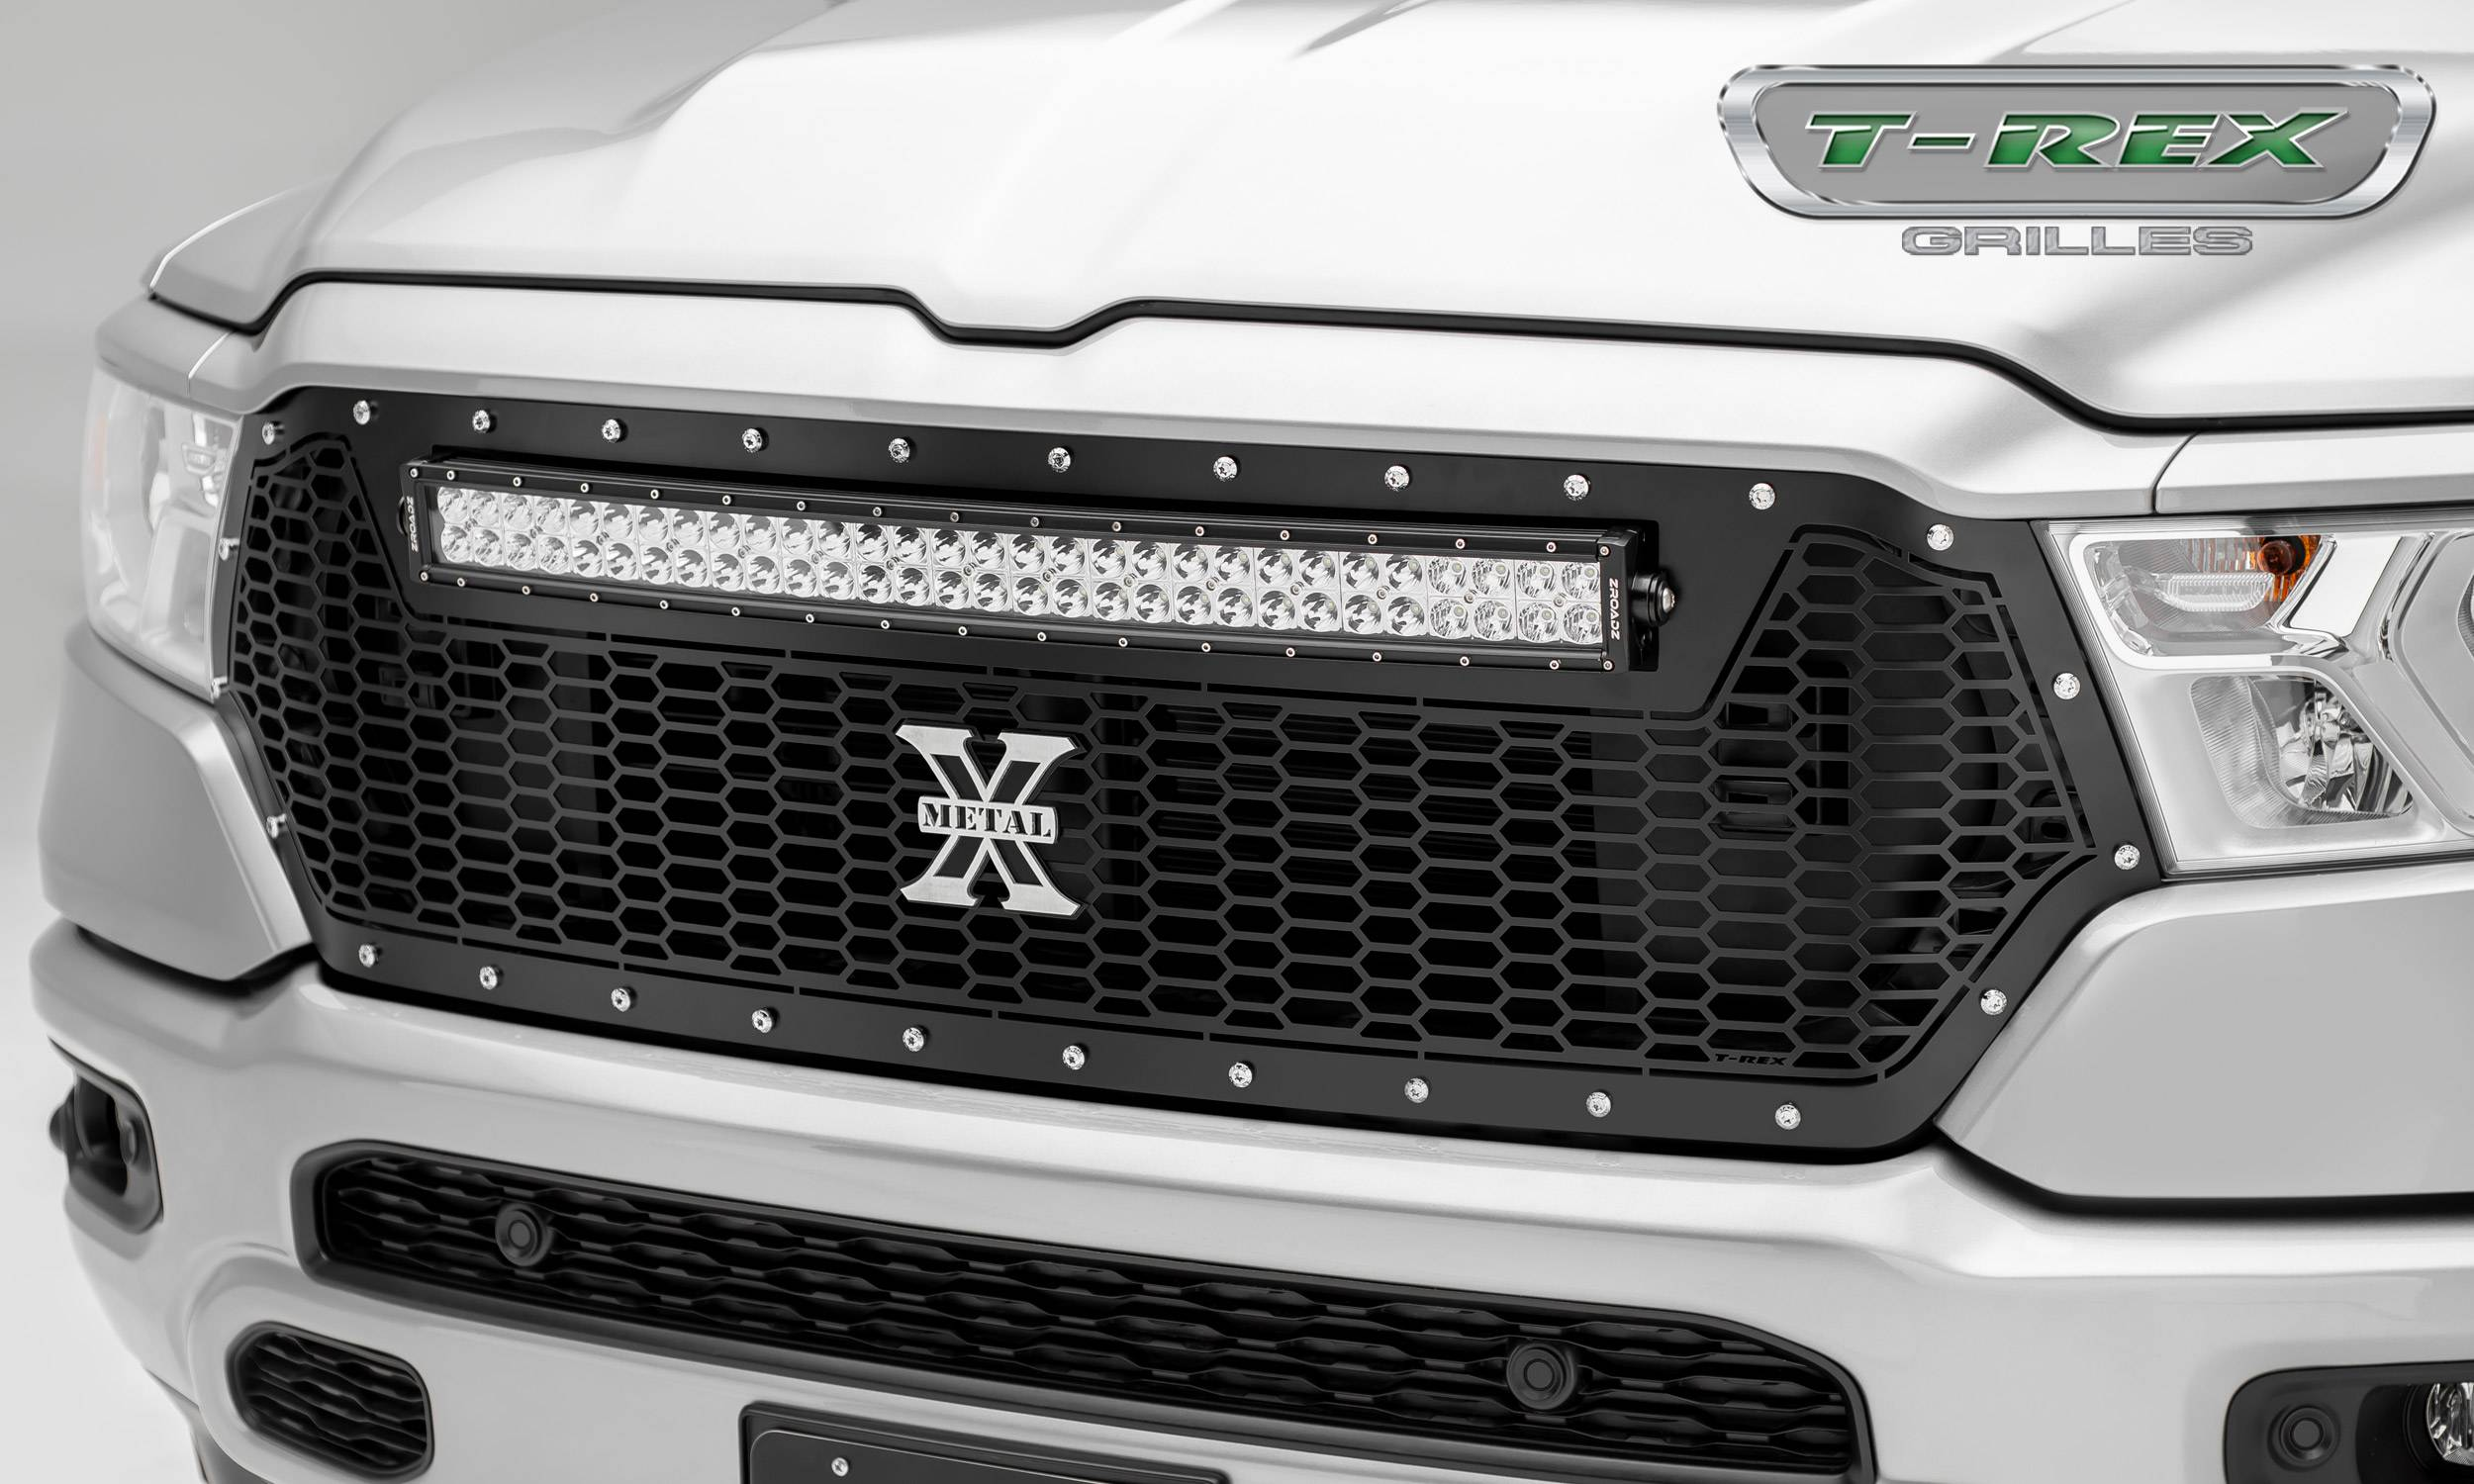 T-REX Grilles - RAM 1500 - Laser Torch Main Grille Replacement w/ (1) 30 inch LED Light Bar - Laser Cut Repeating Pattern, Chrome Studs - Black Finish - Pt # 7314651